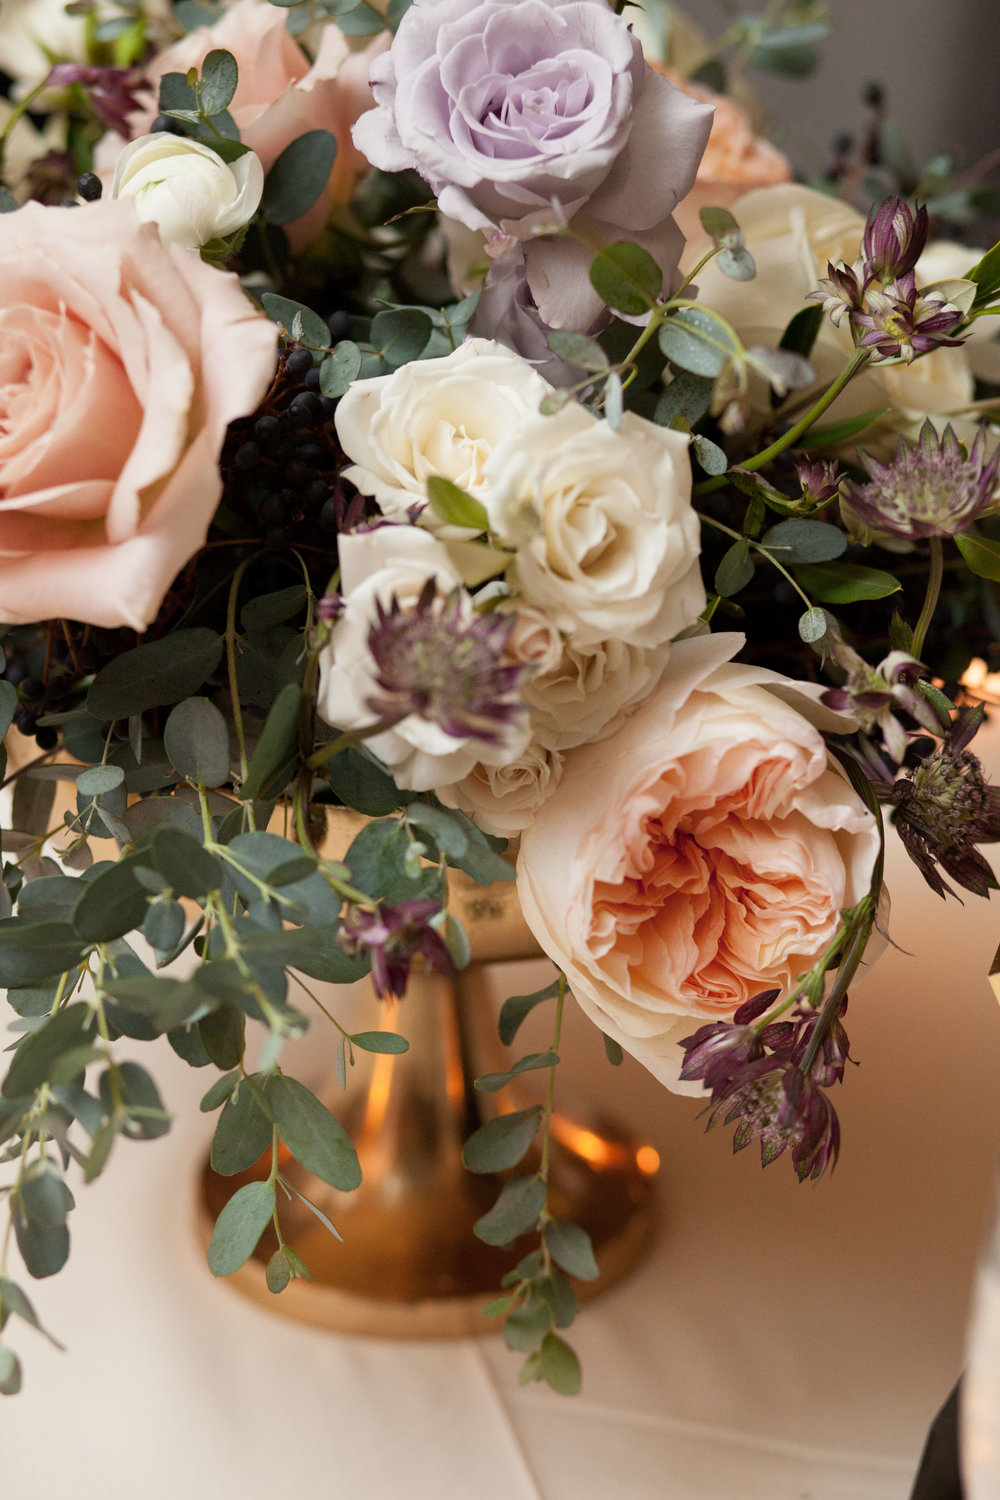 Fleur-Inc-Natalie-Probst-Photography-Lola-Event-Productions-Hotel-Allegro-Centerpiece-Juliette-Garden-Rose